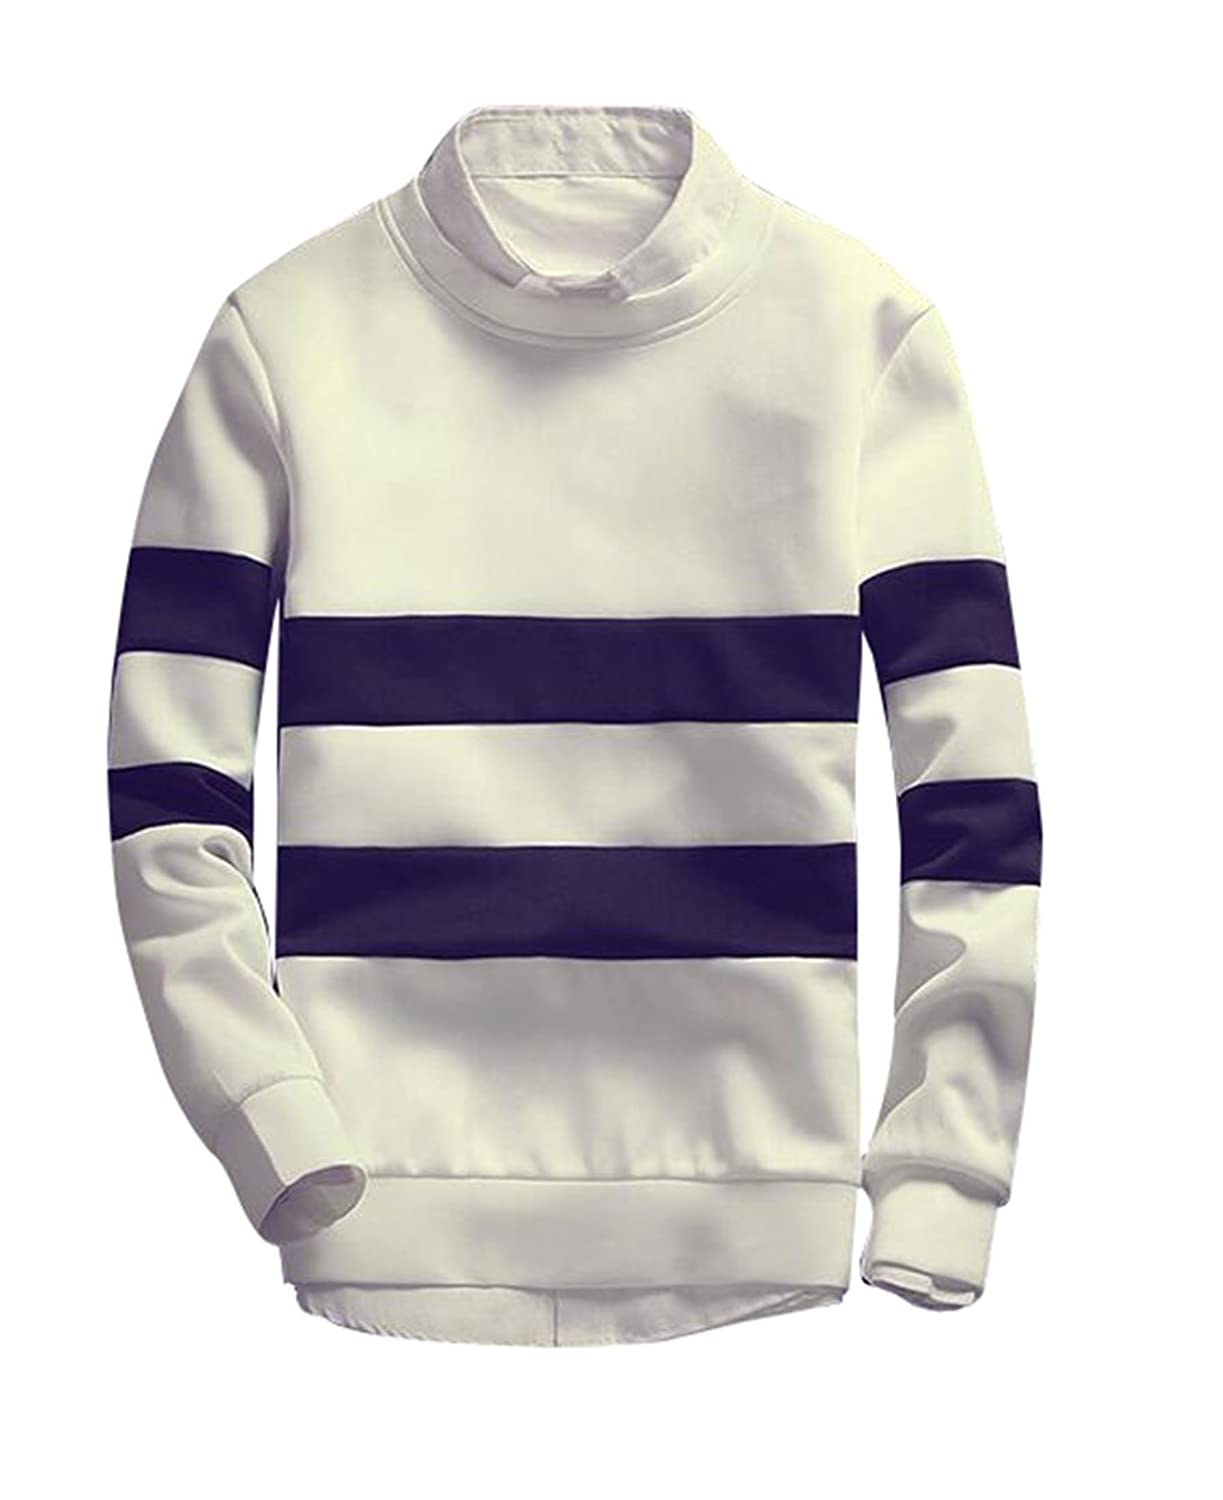 BYBU Men's Kinder Rugby Striped Crew Sweater